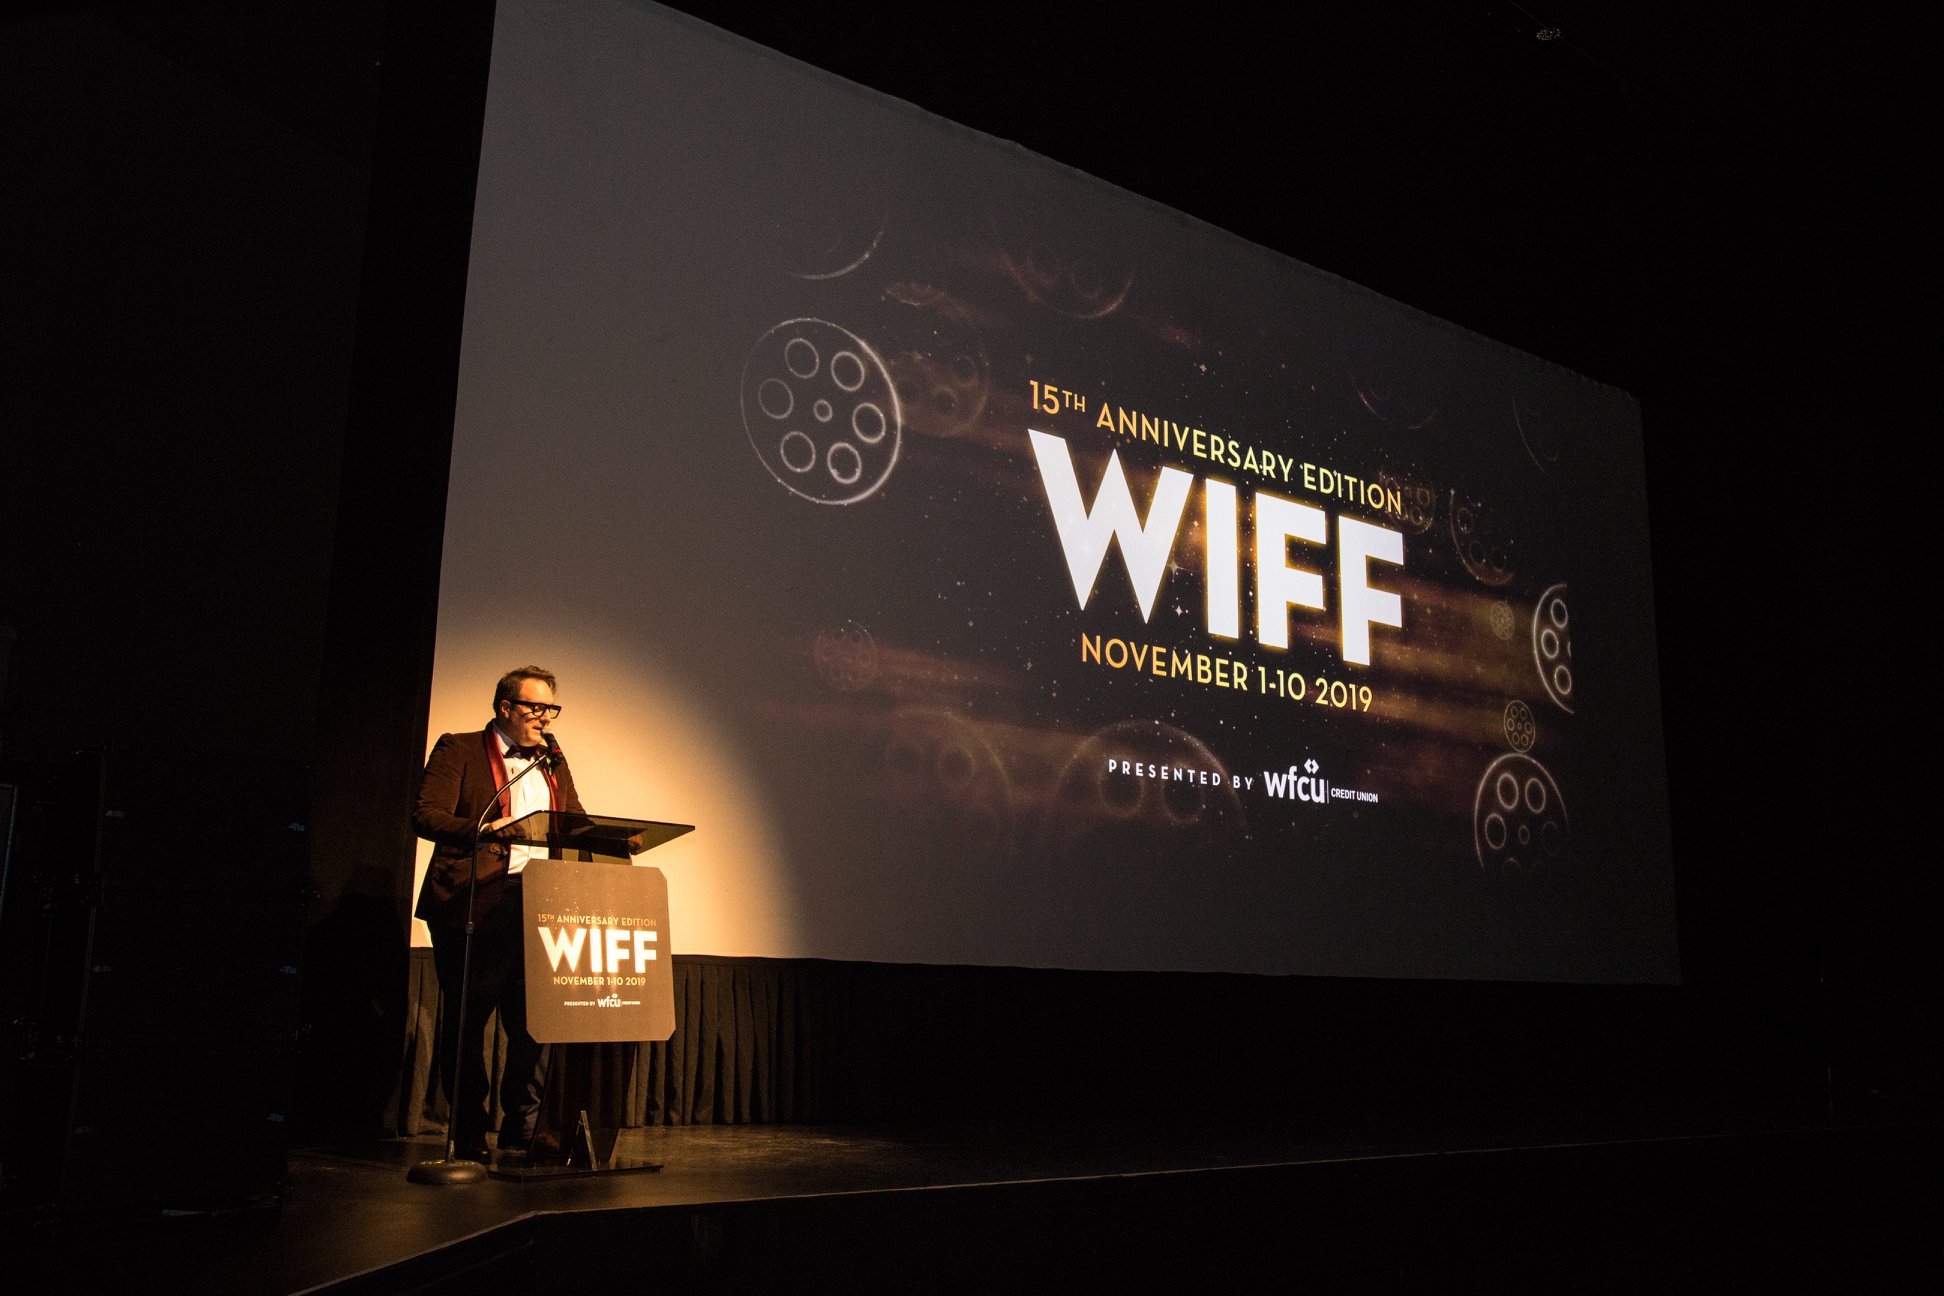 Photo from the Windsor International Film Festival's Facebook page.